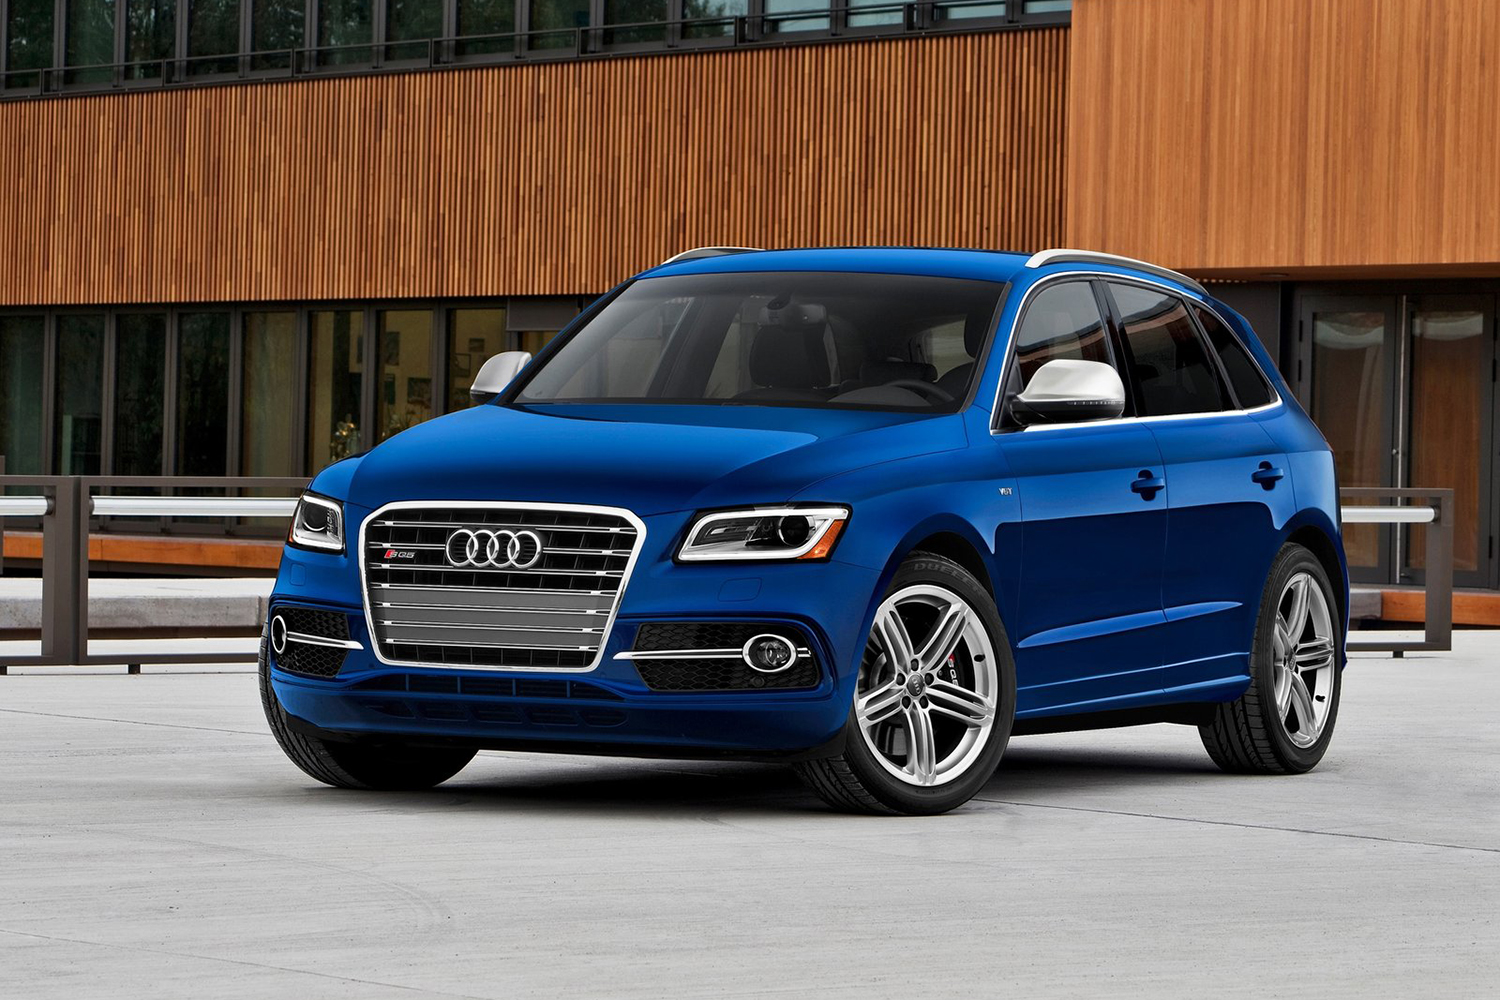 2014 audi sq5 hypebeast. Black Bedroom Furniture Sets. Home Design Ideas